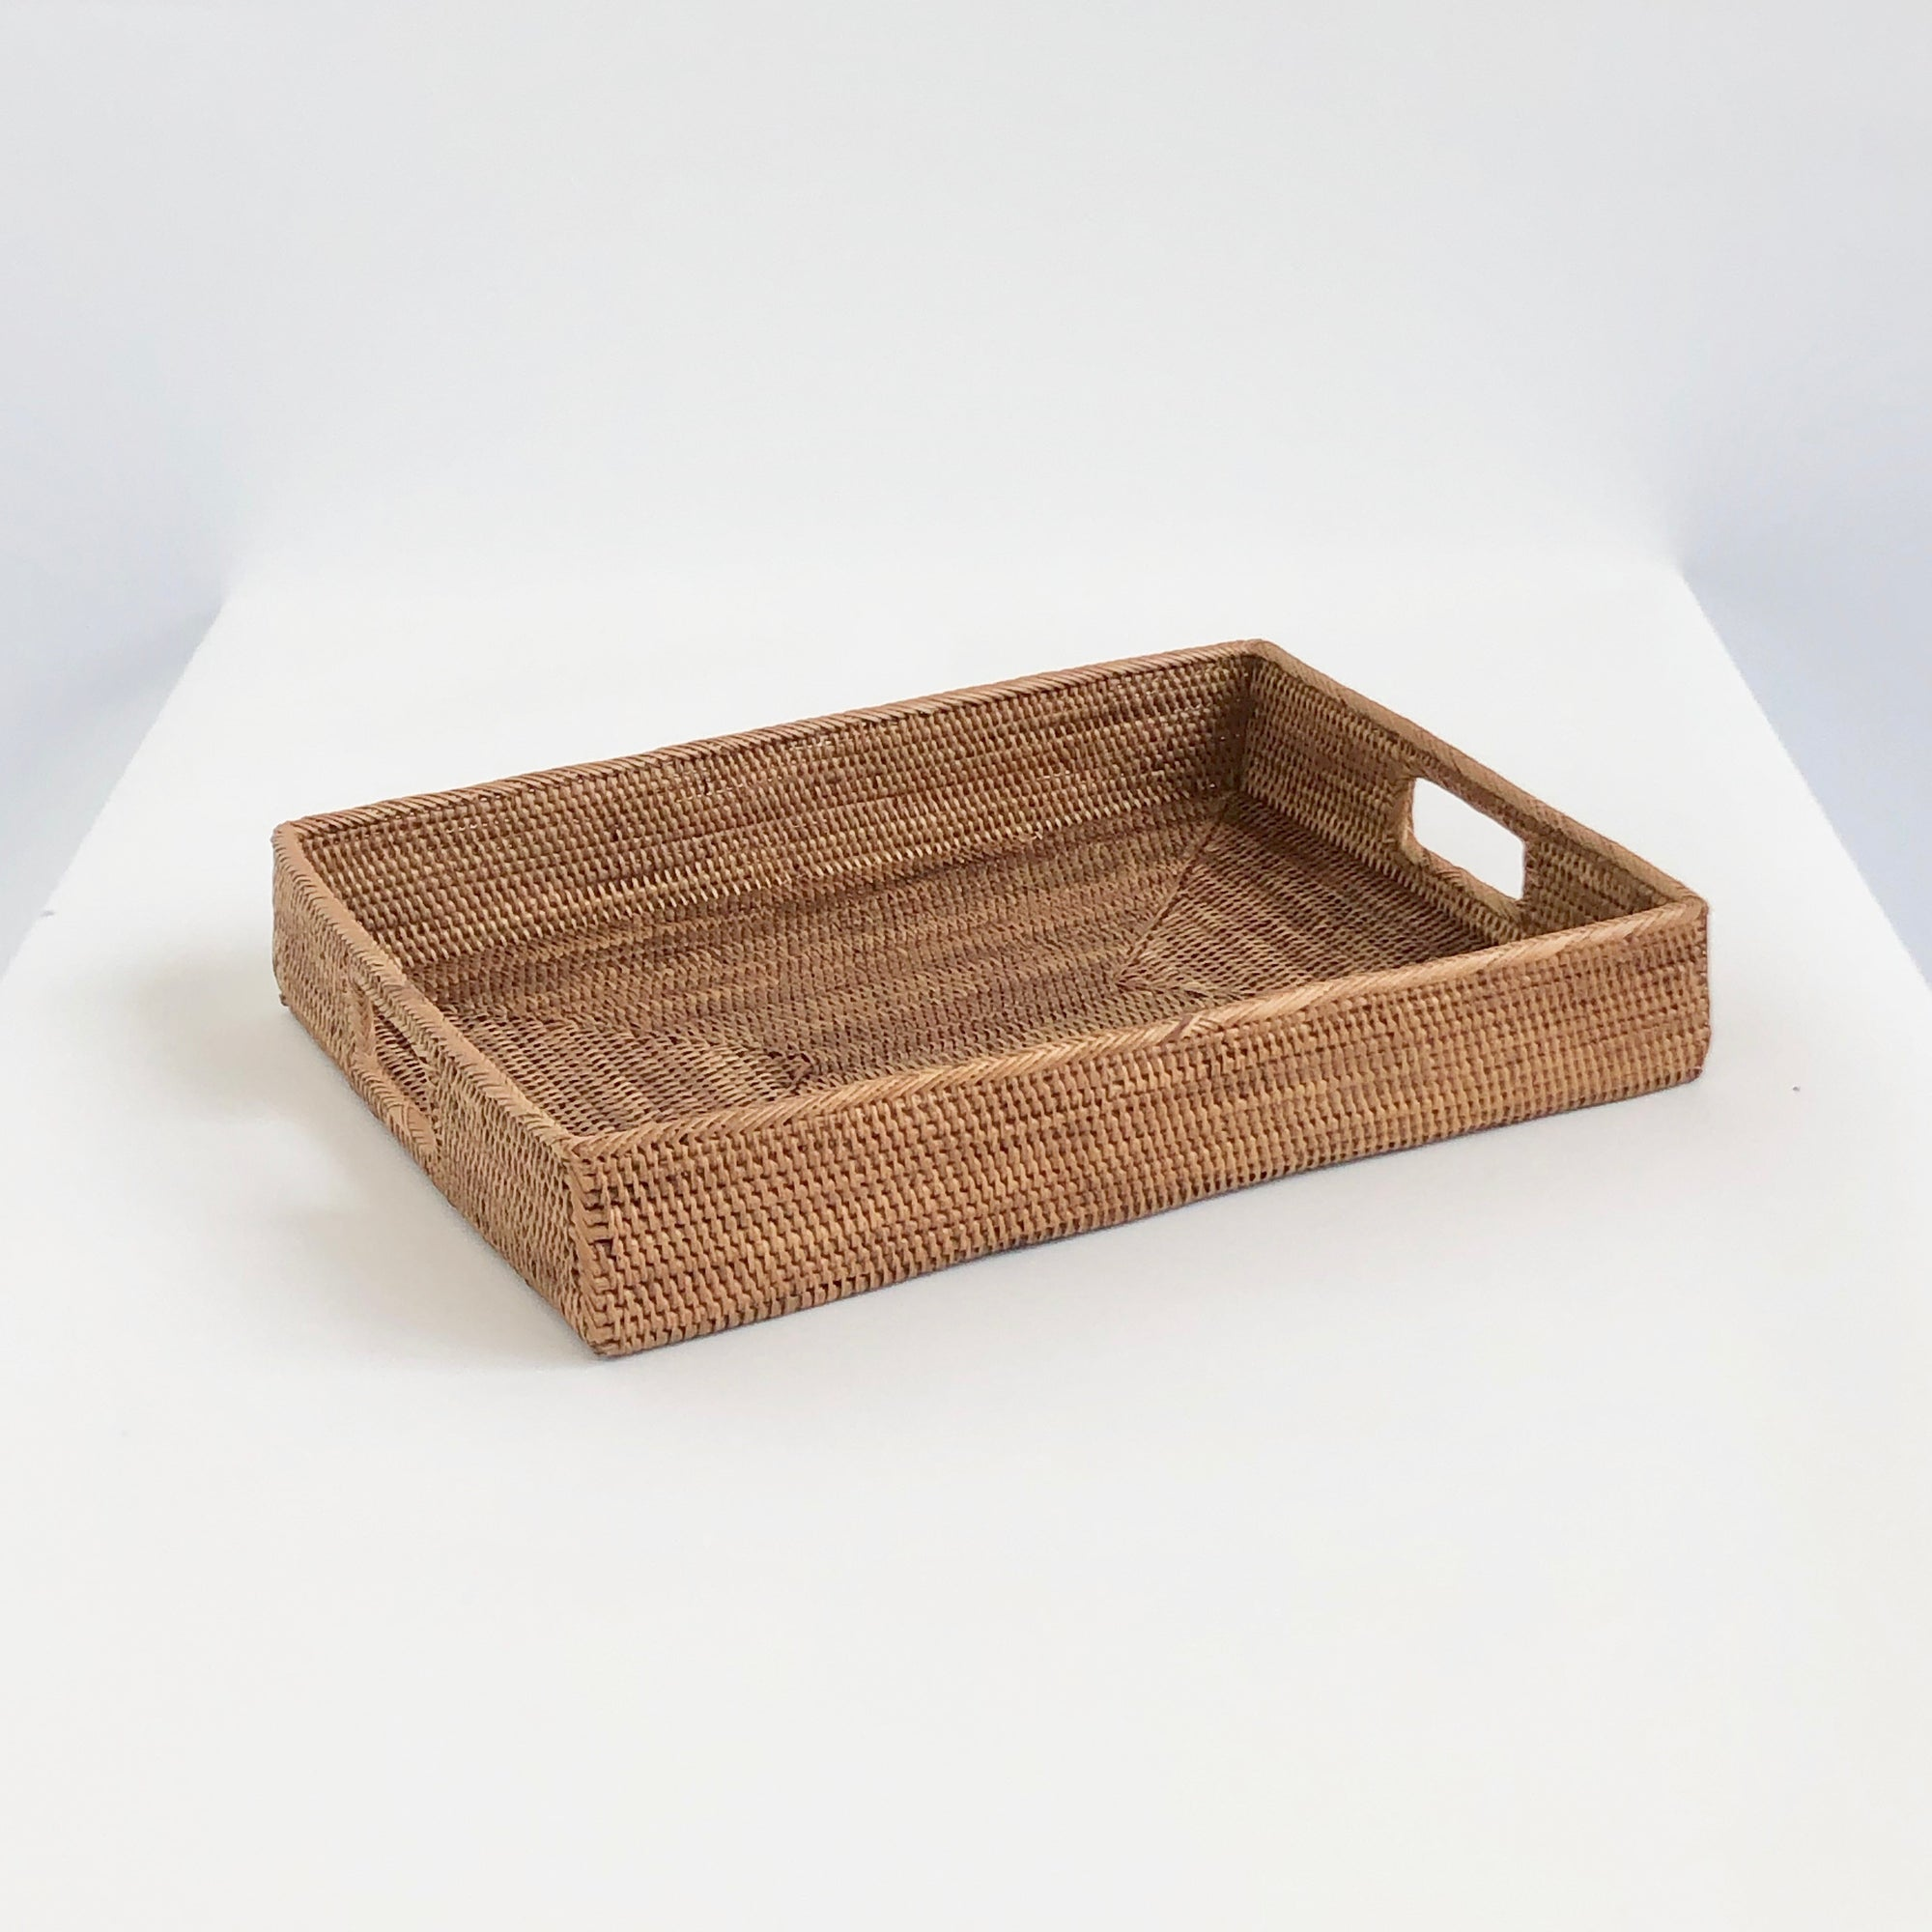 Hand-woven rectangular tray with handles